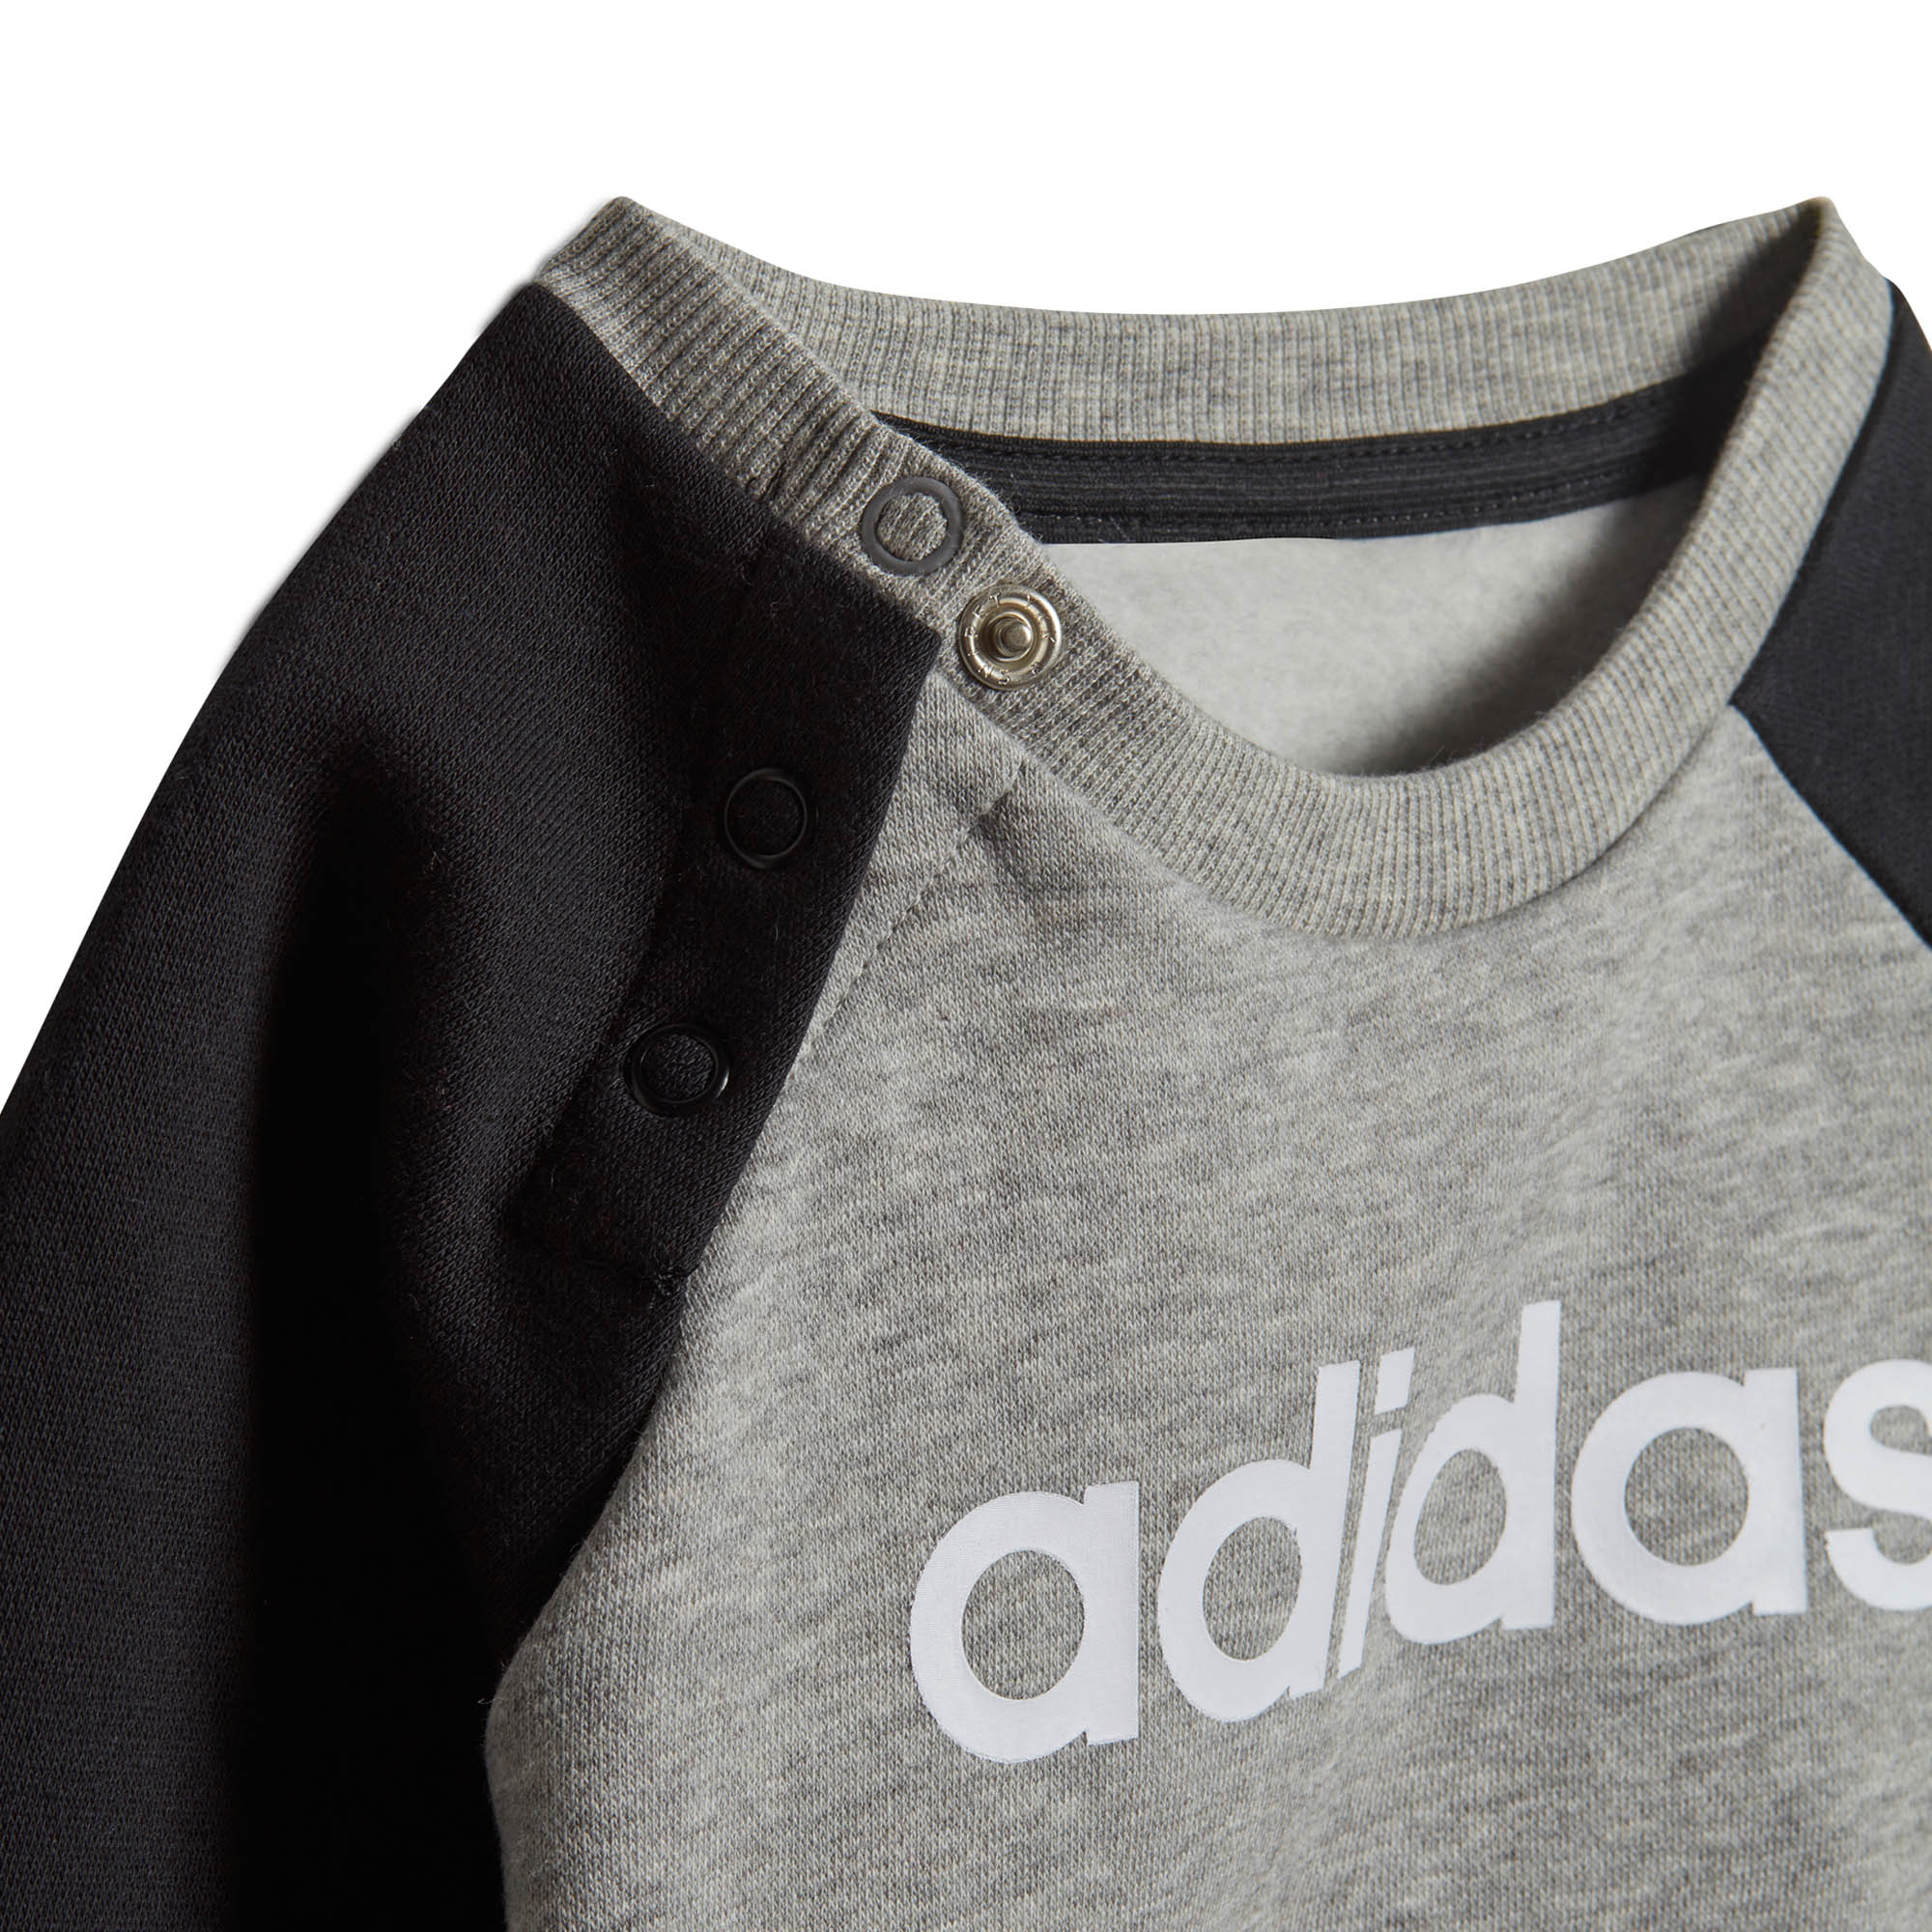 61959bd3c7689 Adidas linéaire Jogger Infant Toddler Kids cavalier pantalon survêtement  Set Black/Grey